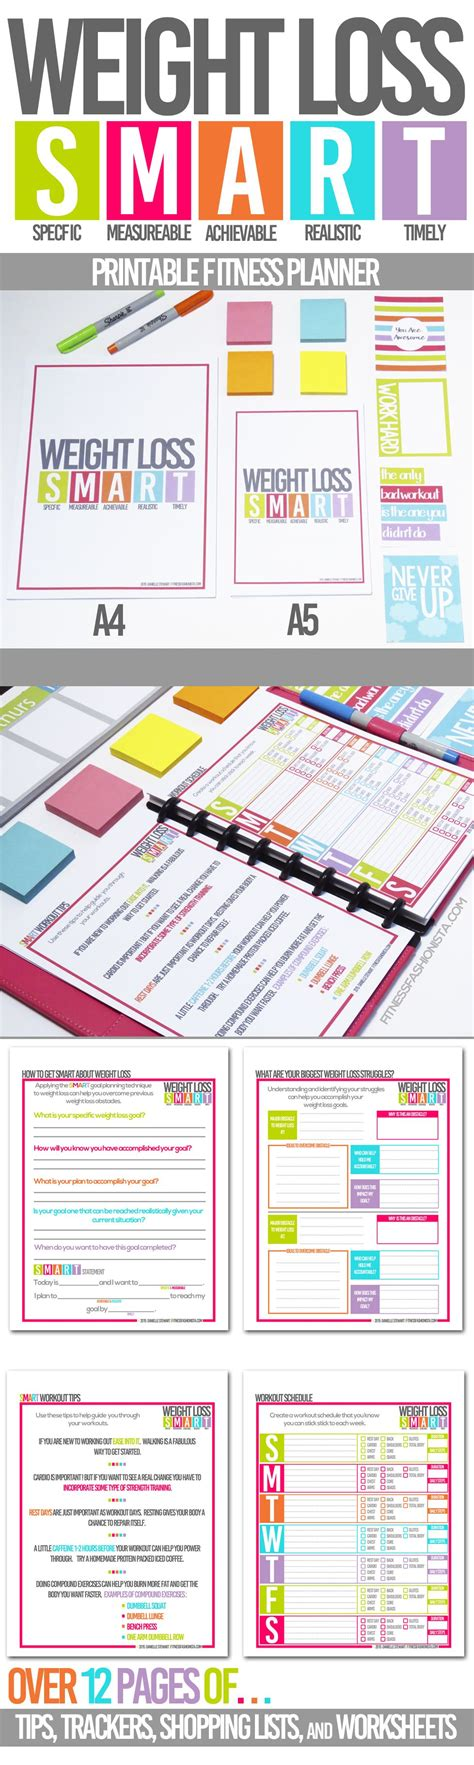 printable meal planner to lose weight smart weight loss printable fitness planner to help keep